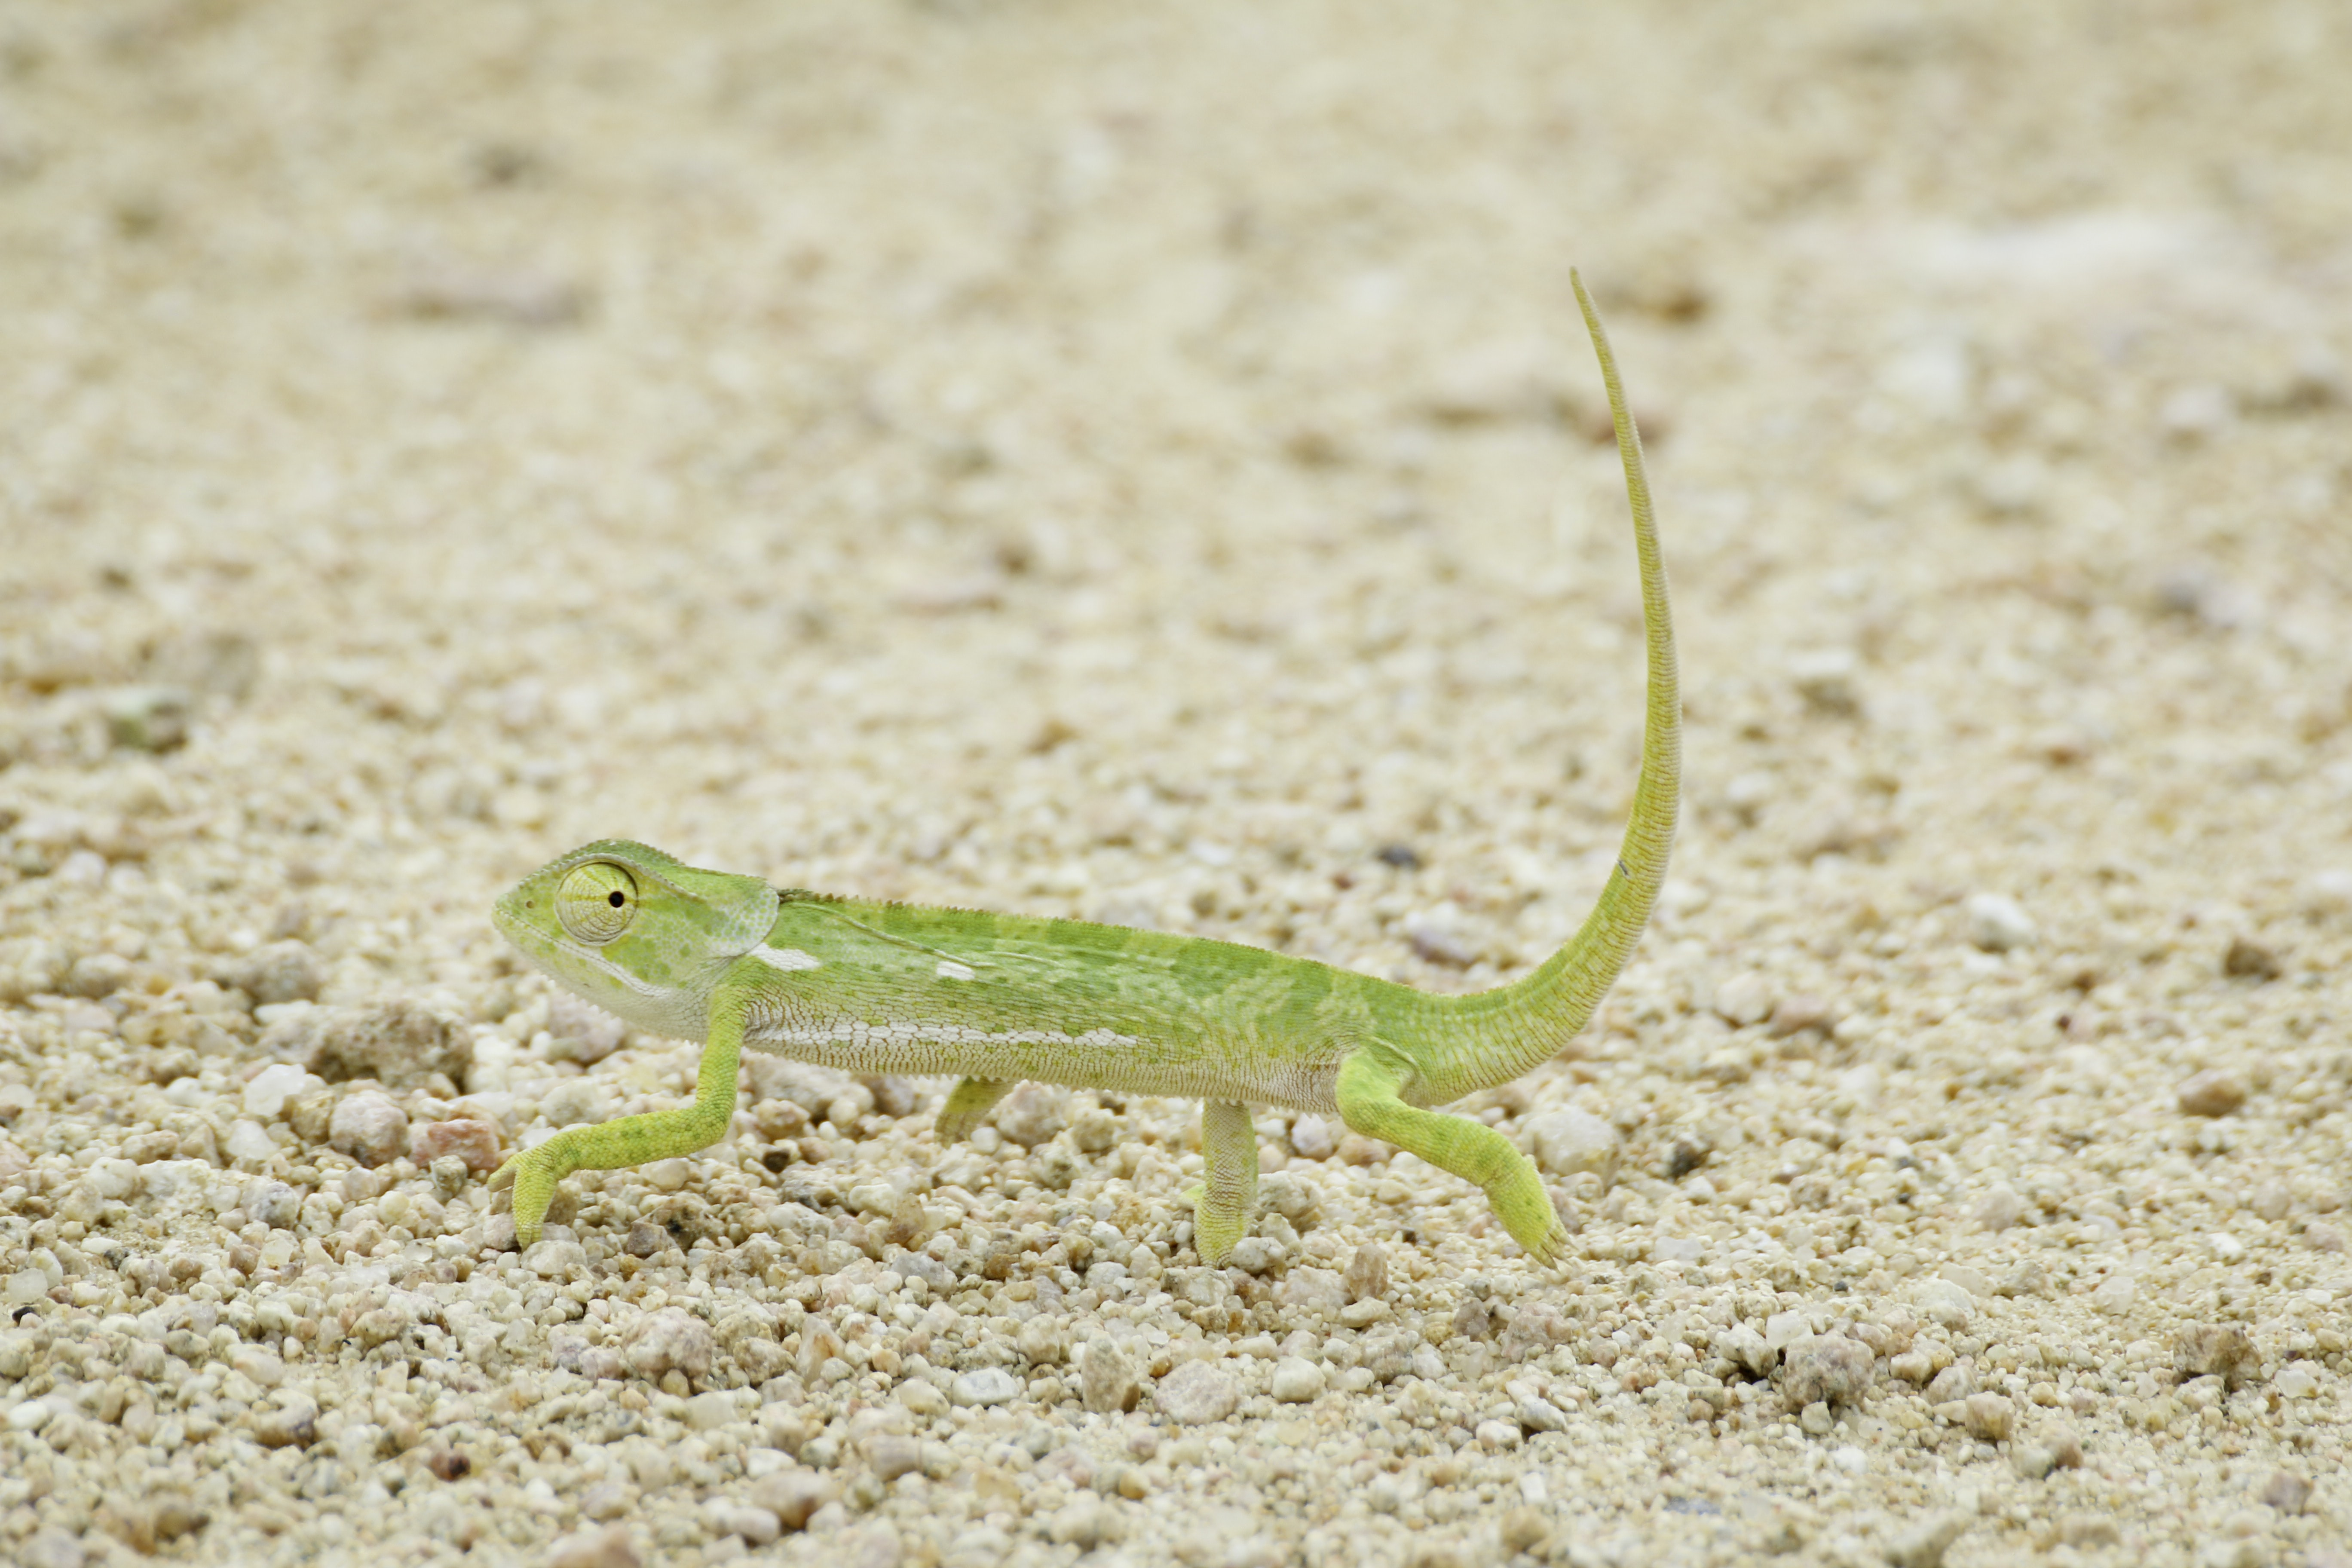 green reptile walking on soil